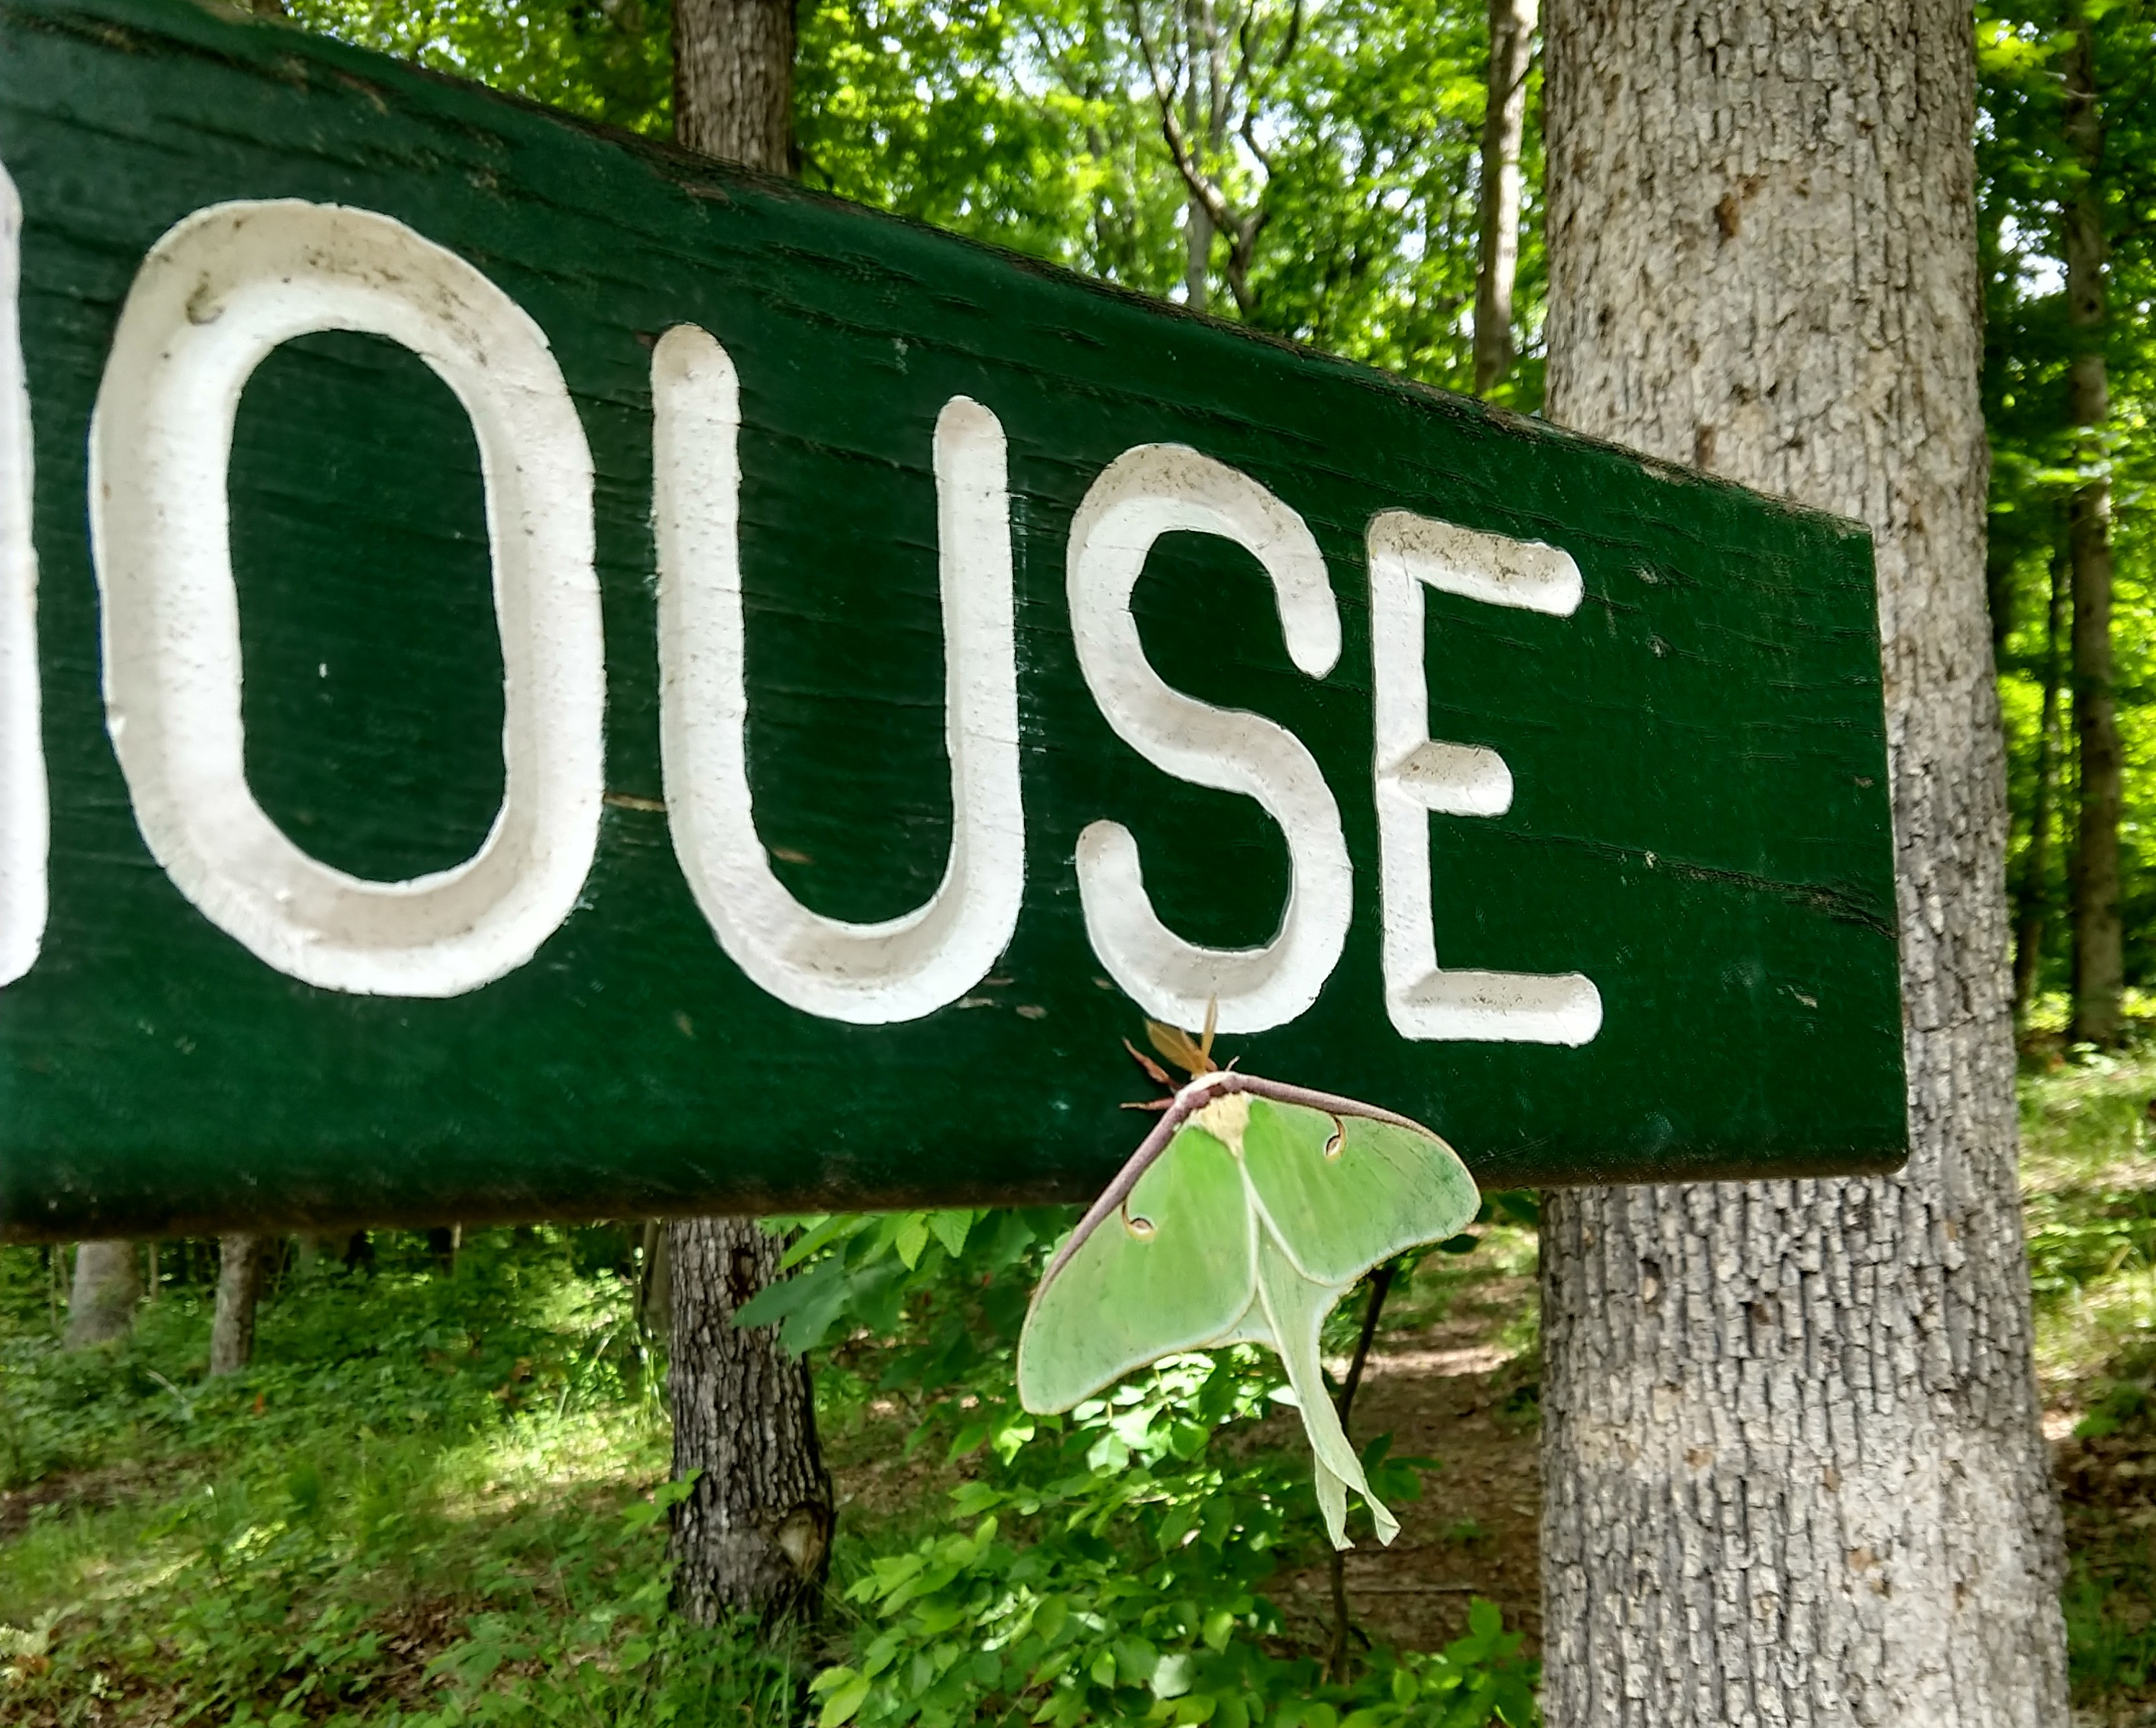 Luna Moth resting on a sign for the Boat House Luxury Romantic Cabin